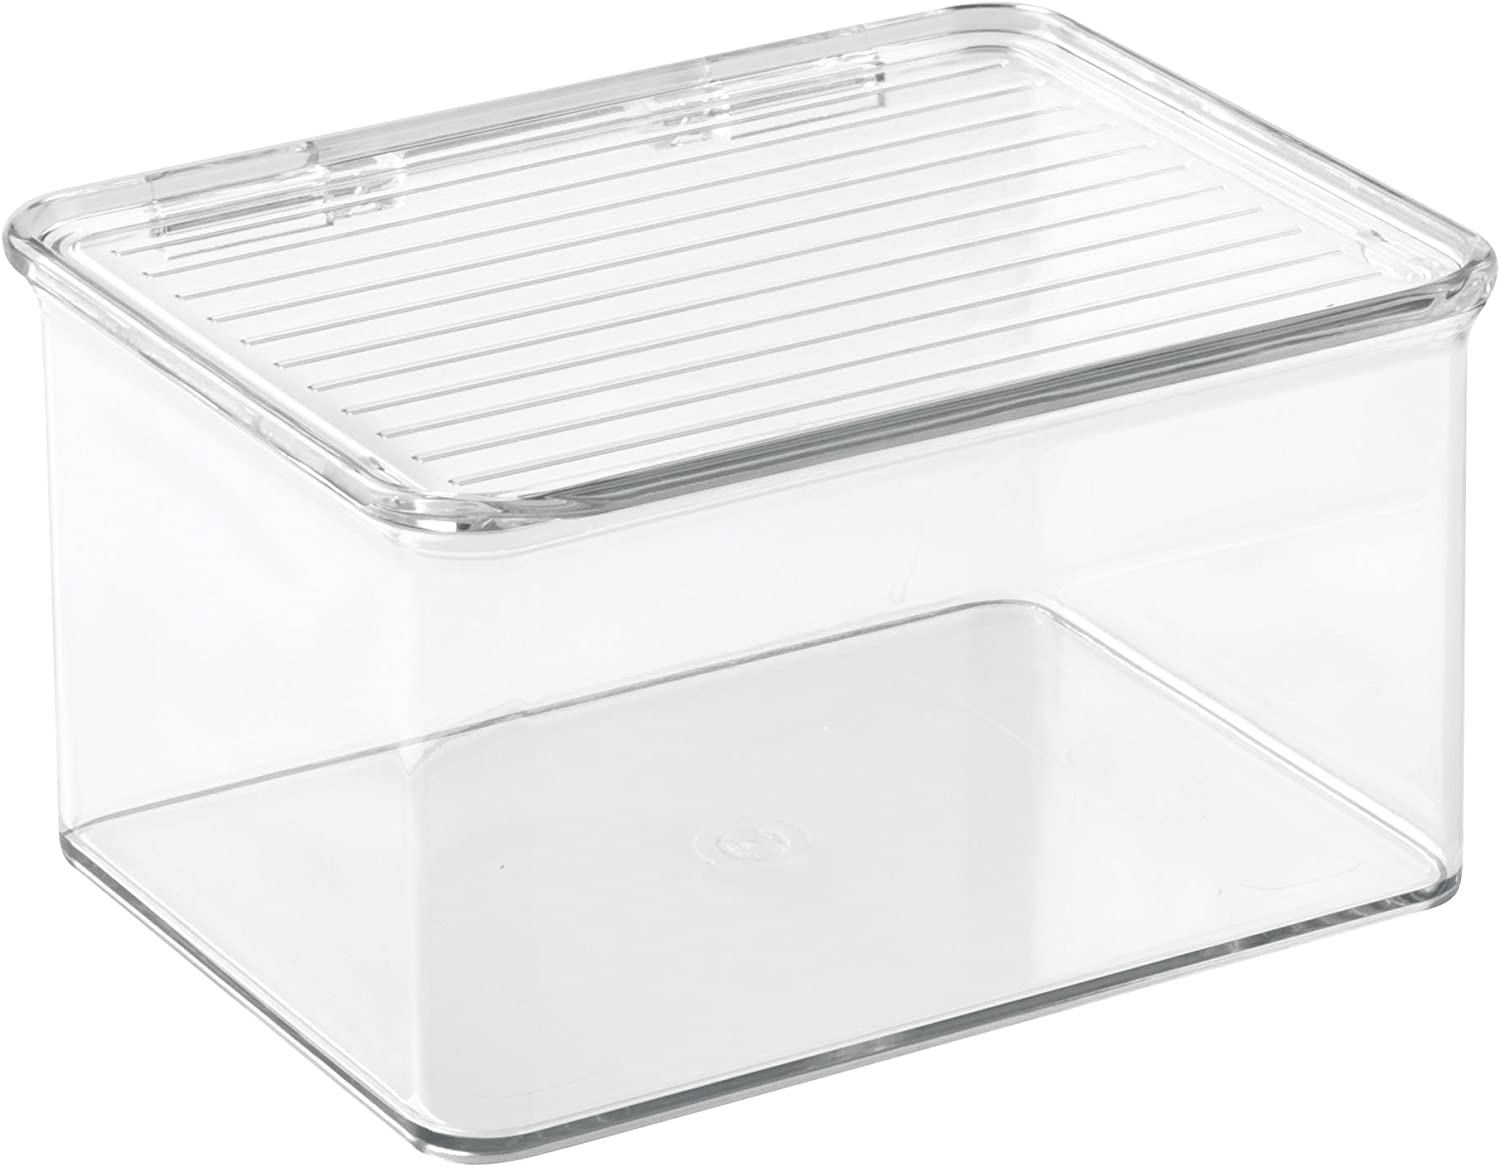 iDesign Kitchen, Pantry, Refrigerator, Freezer Storage Container with Hinged Lid, 1.5-Quart, Clear